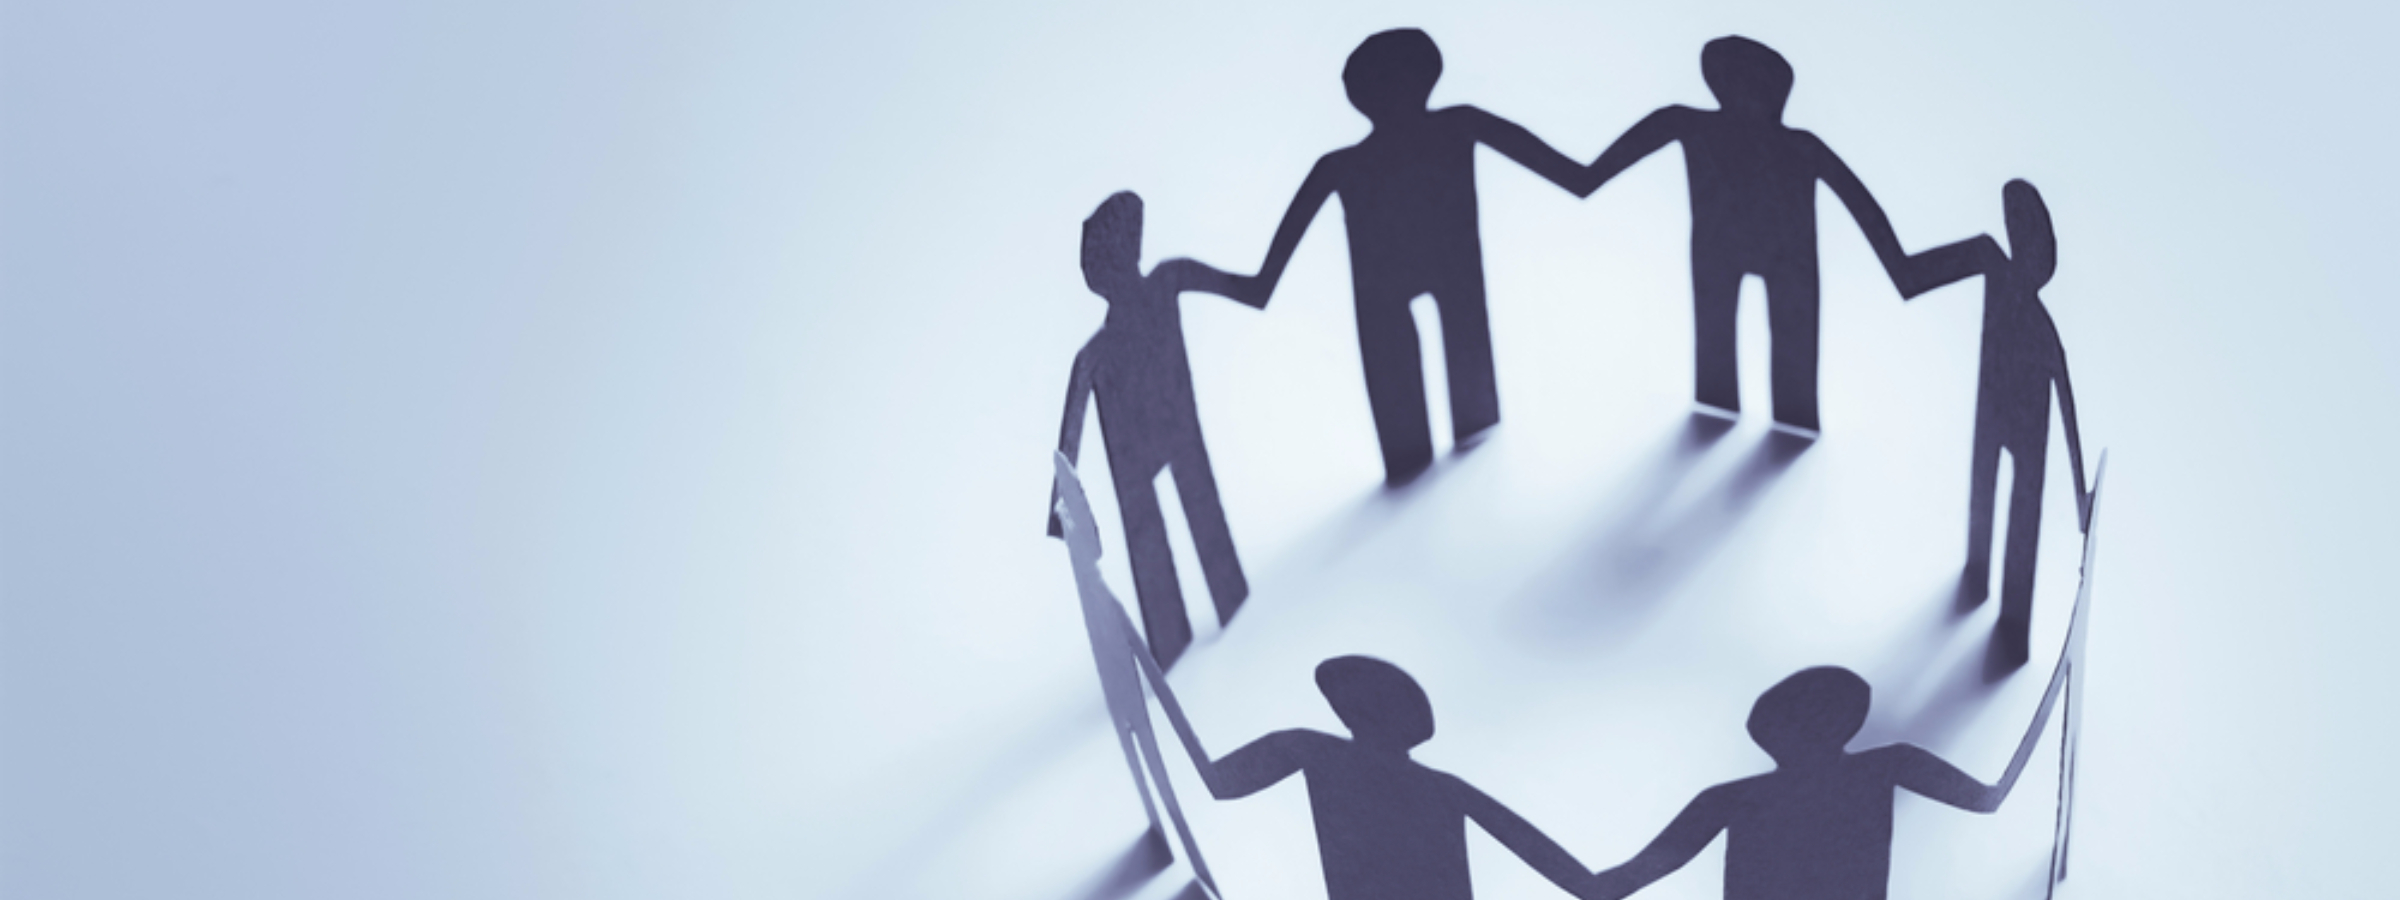 How to harness the amazing power of team work